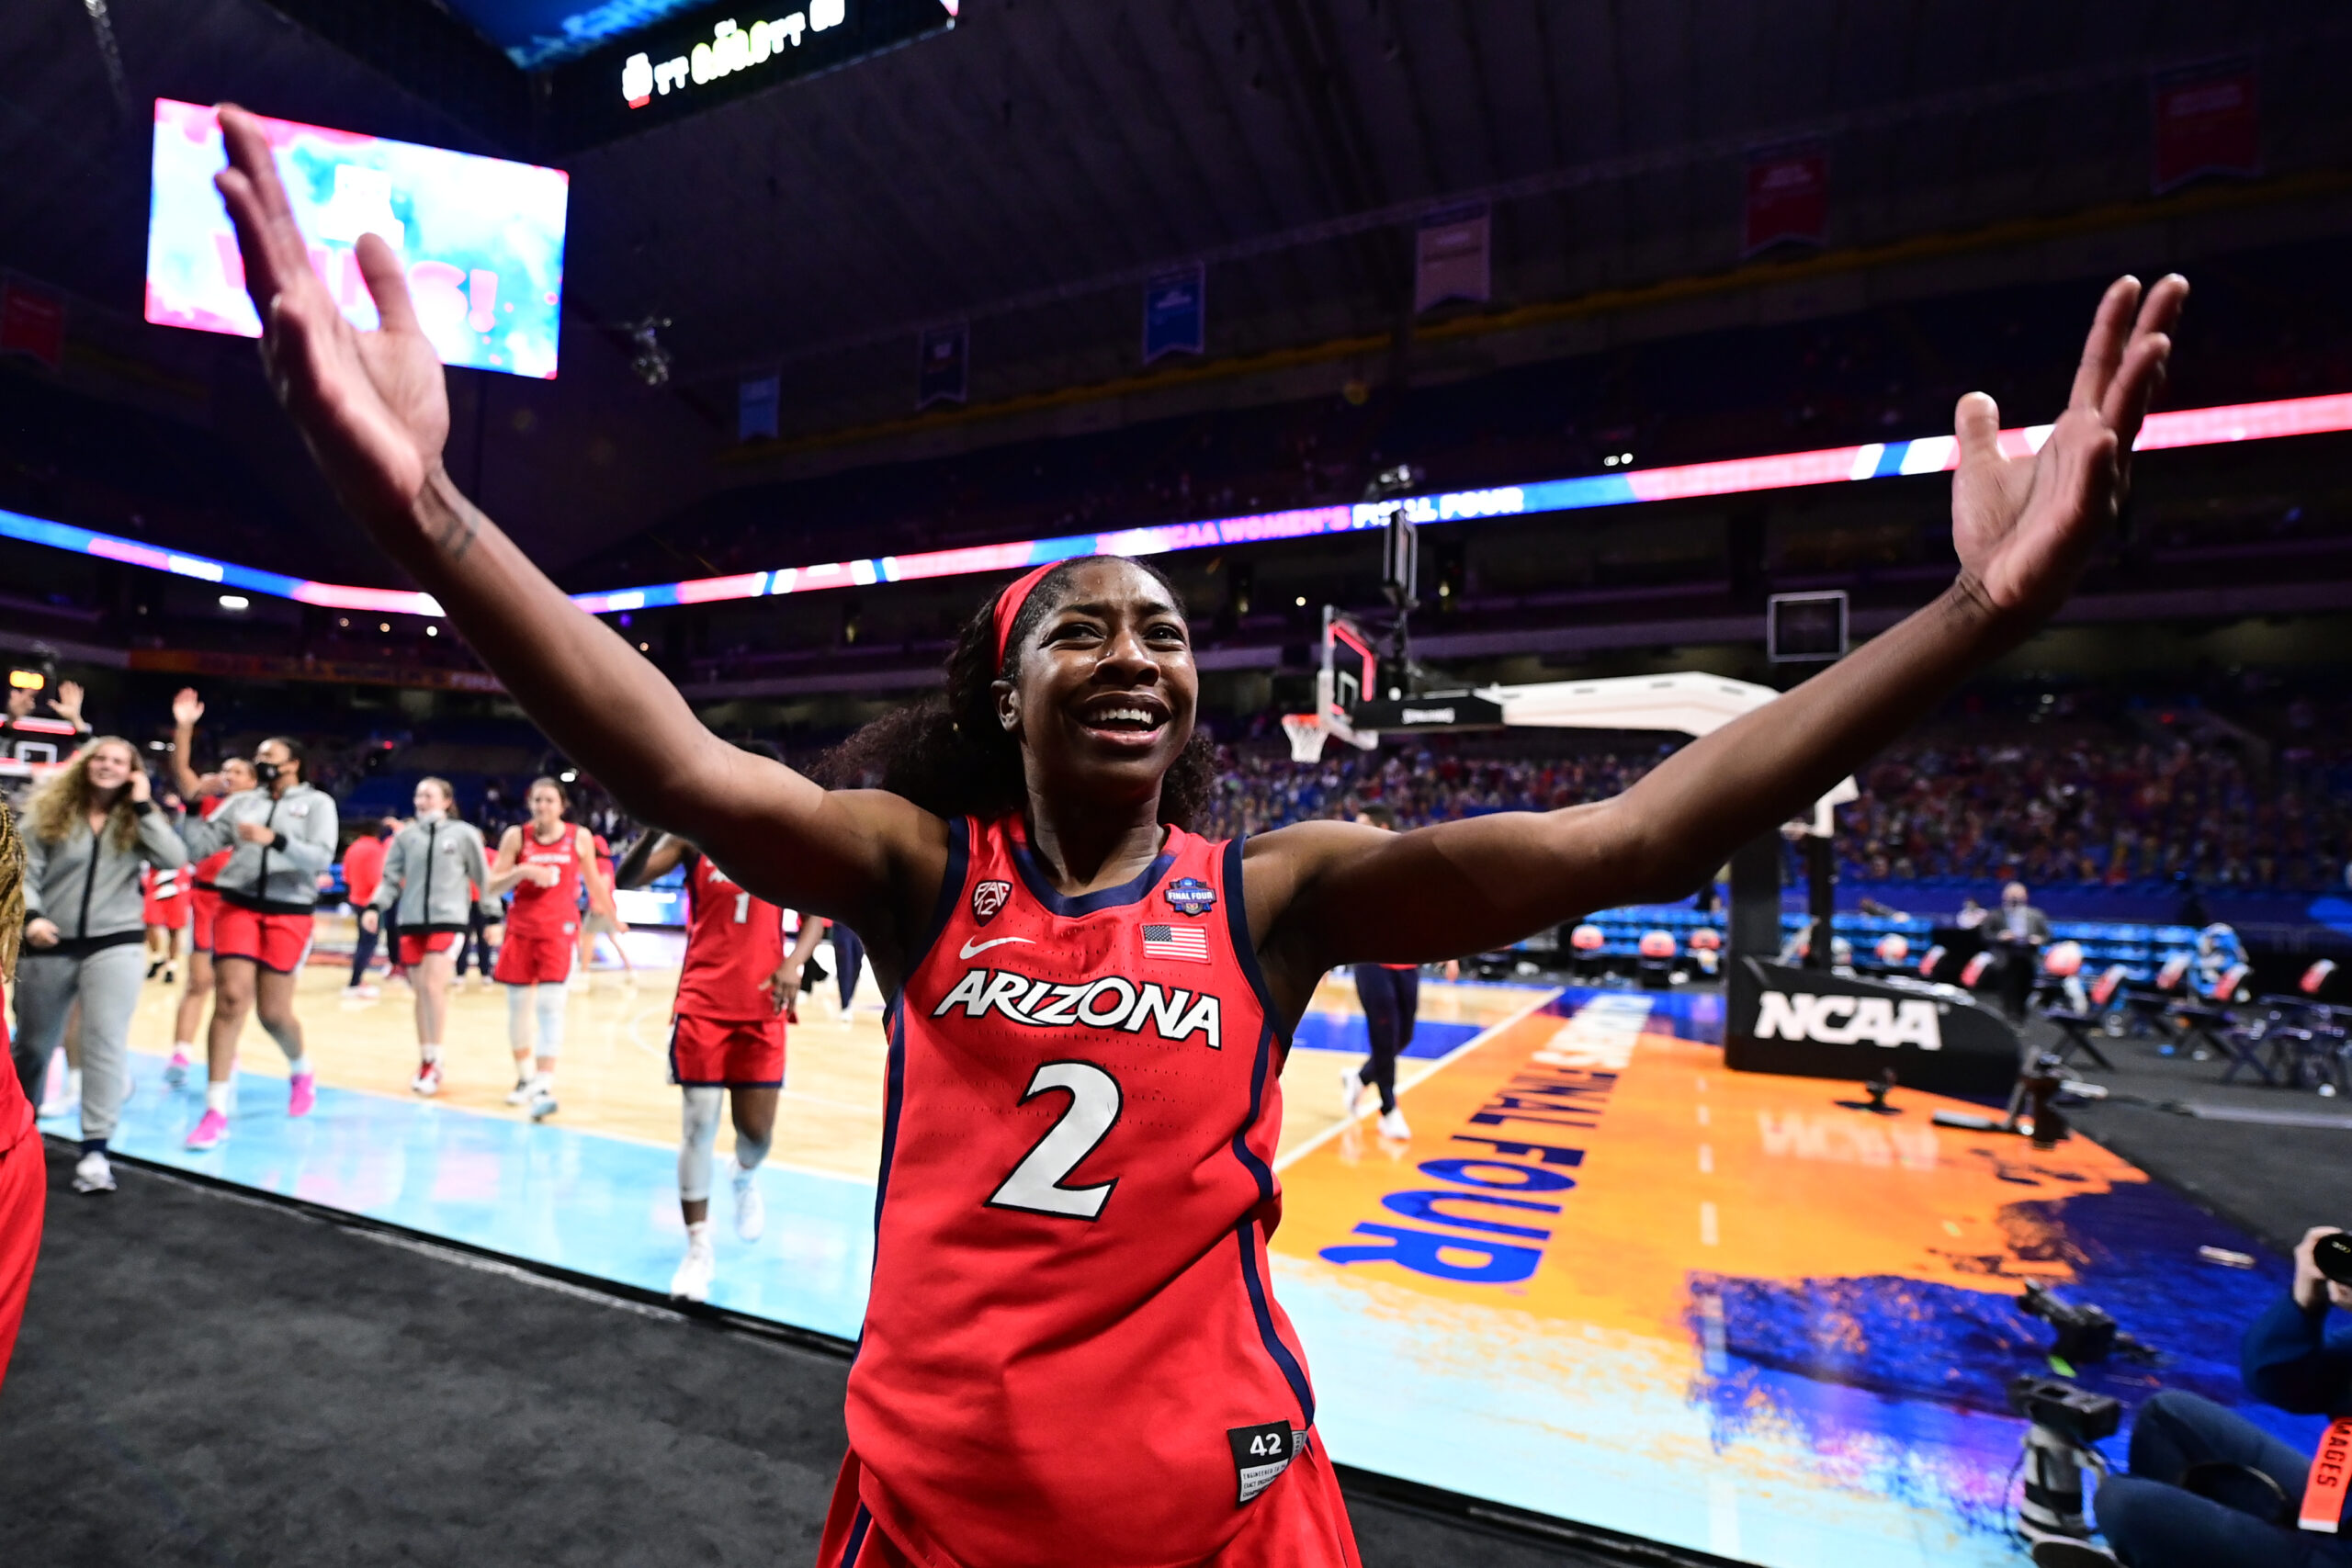 Arizona continues to make history, heads into the national championship game after taking down UConn